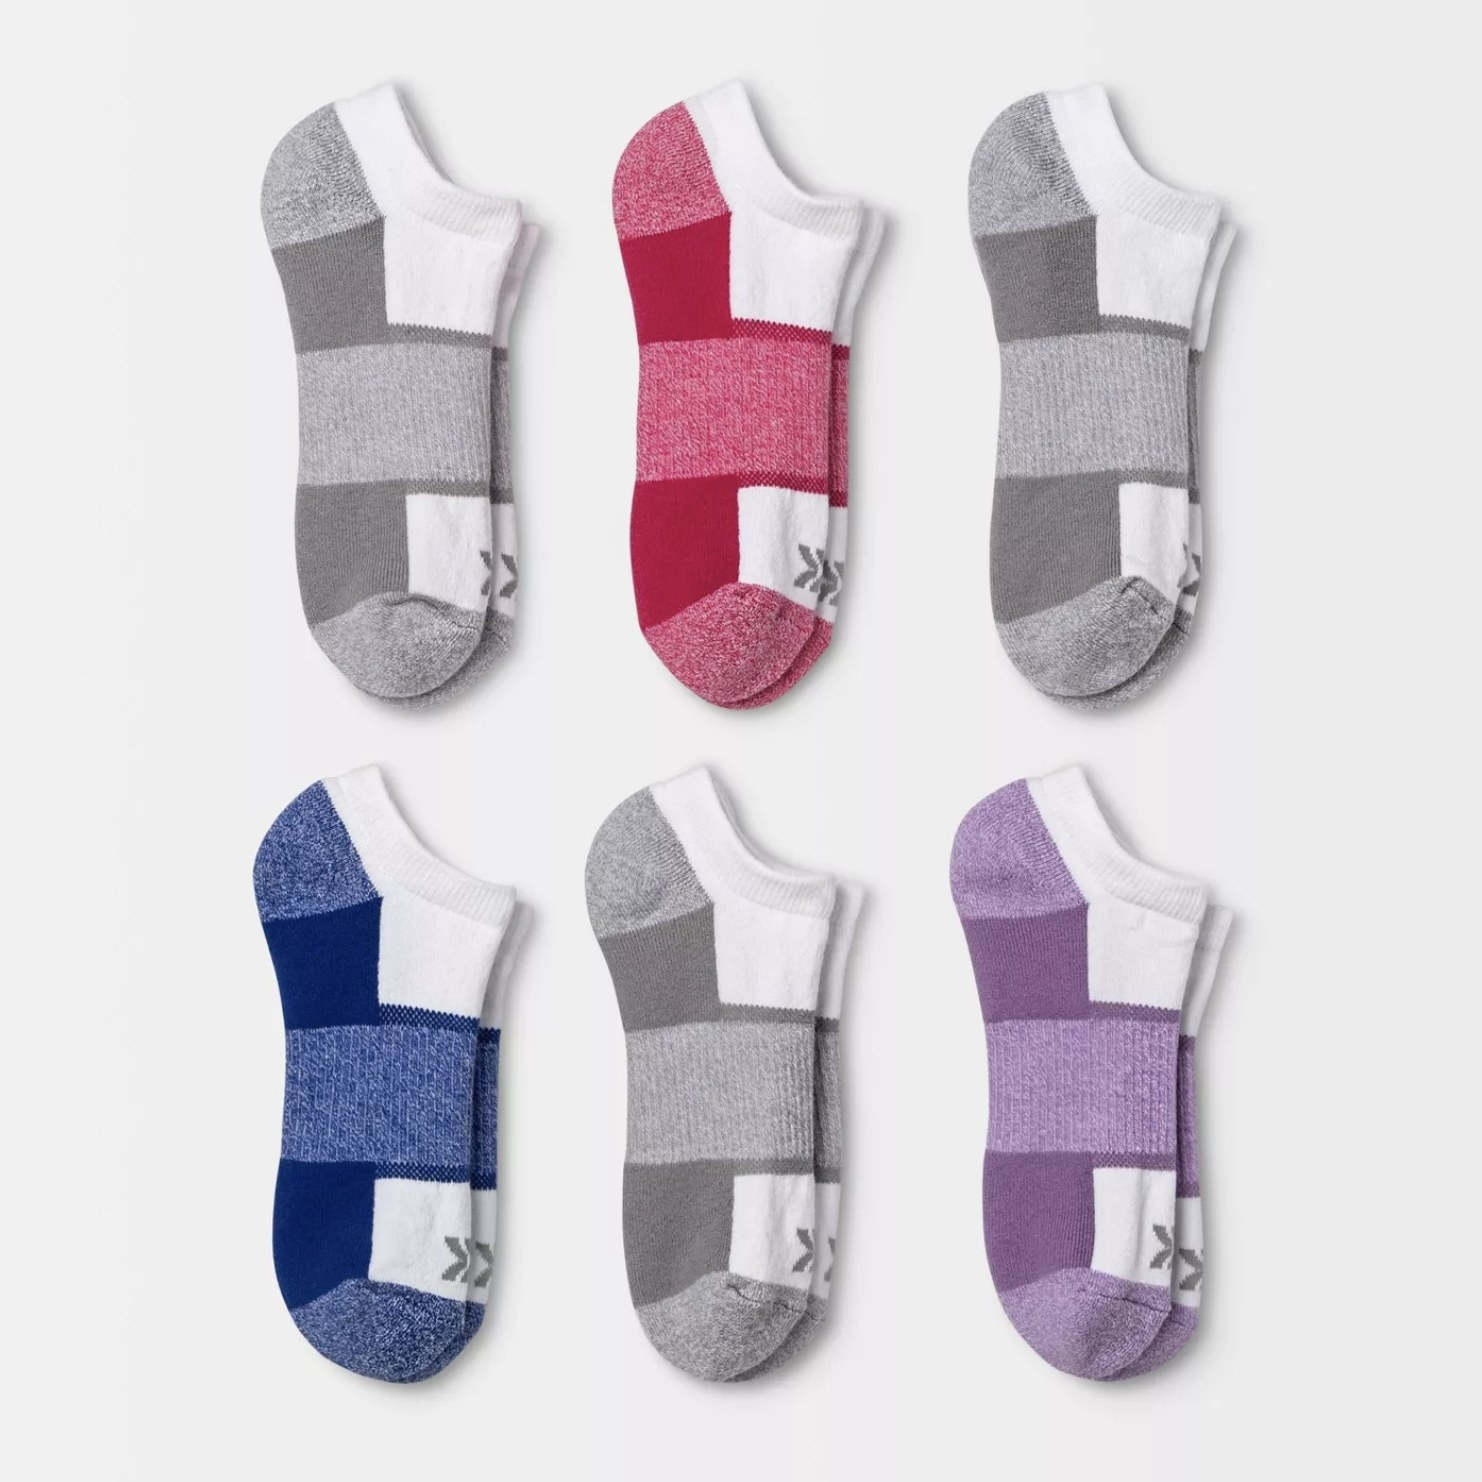 Six pairs of white socks with grey, purple, and red colors